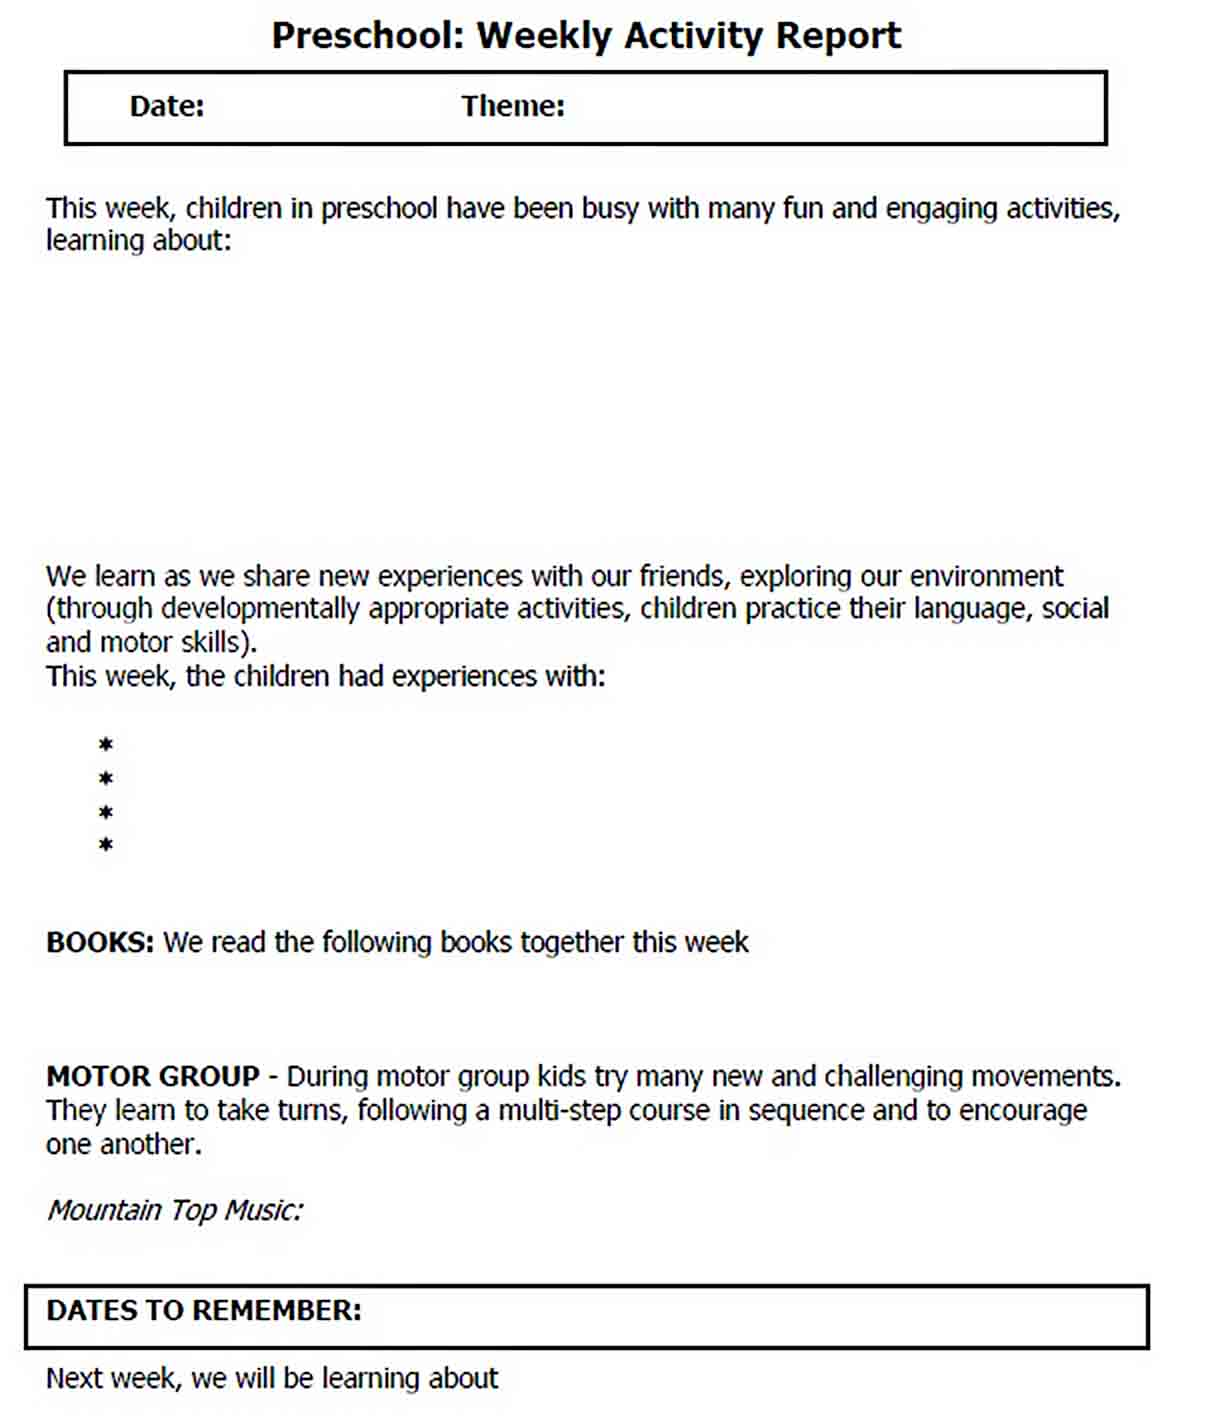 Templates Preschool Weekly Activity Report